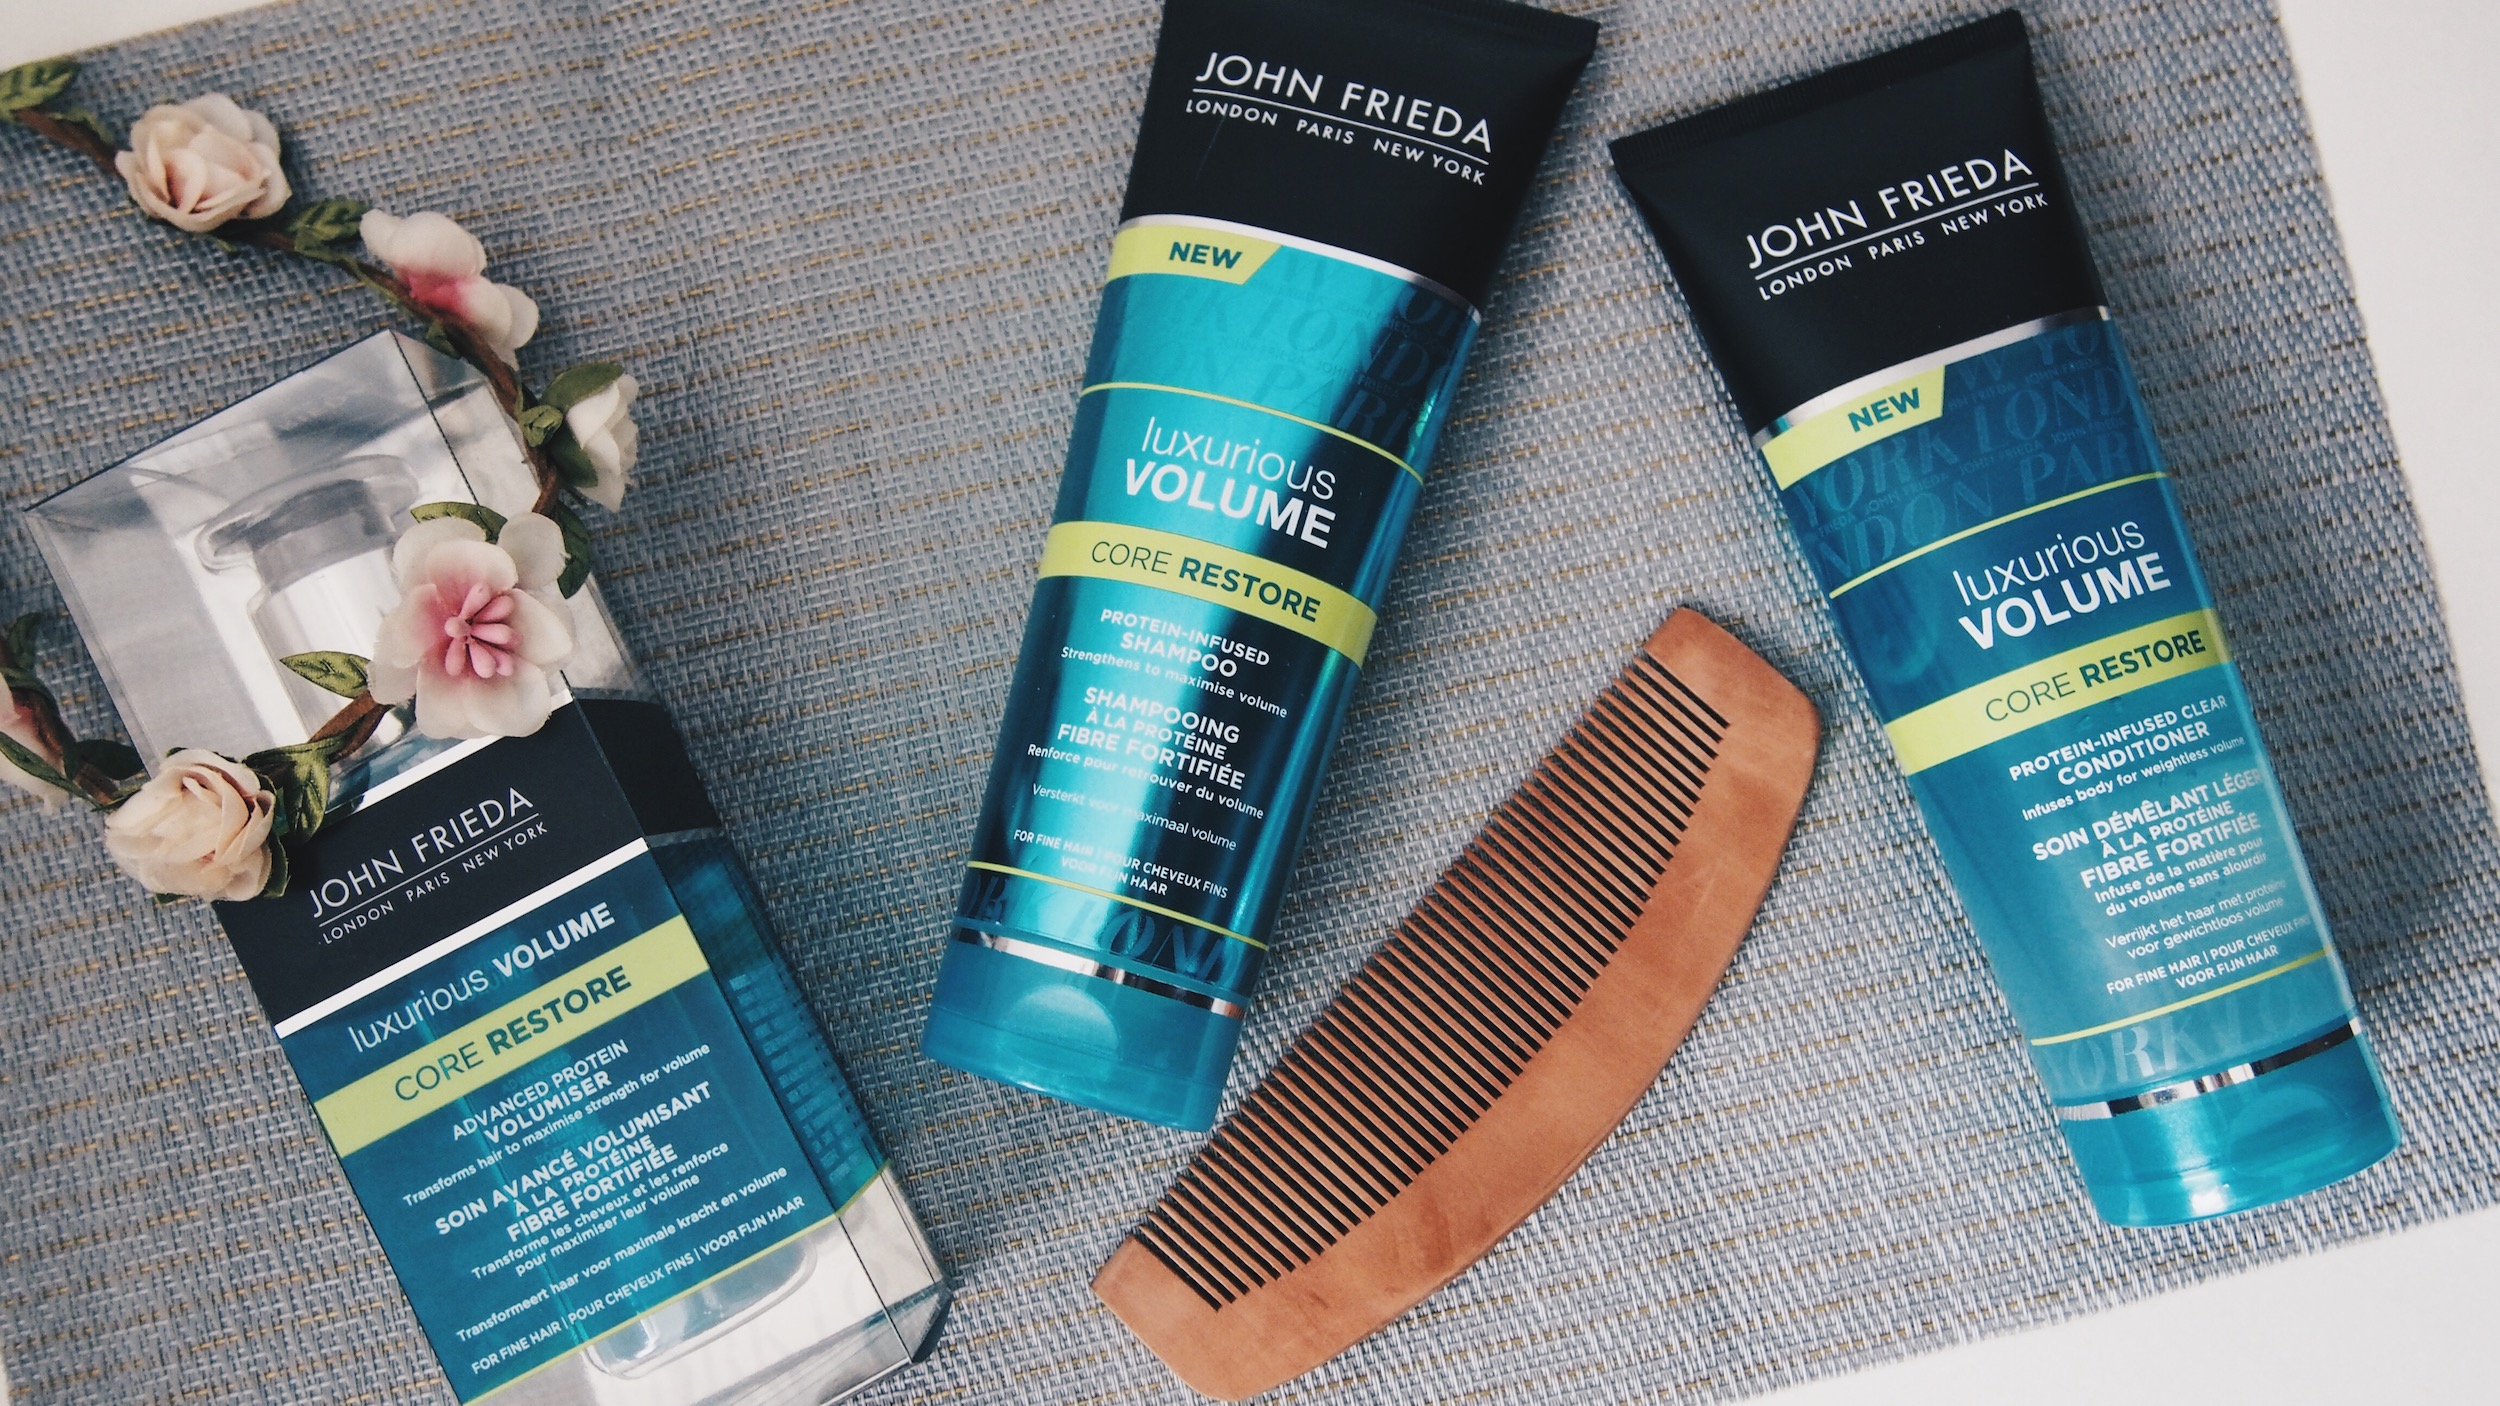 Du volume grace à John Frieda